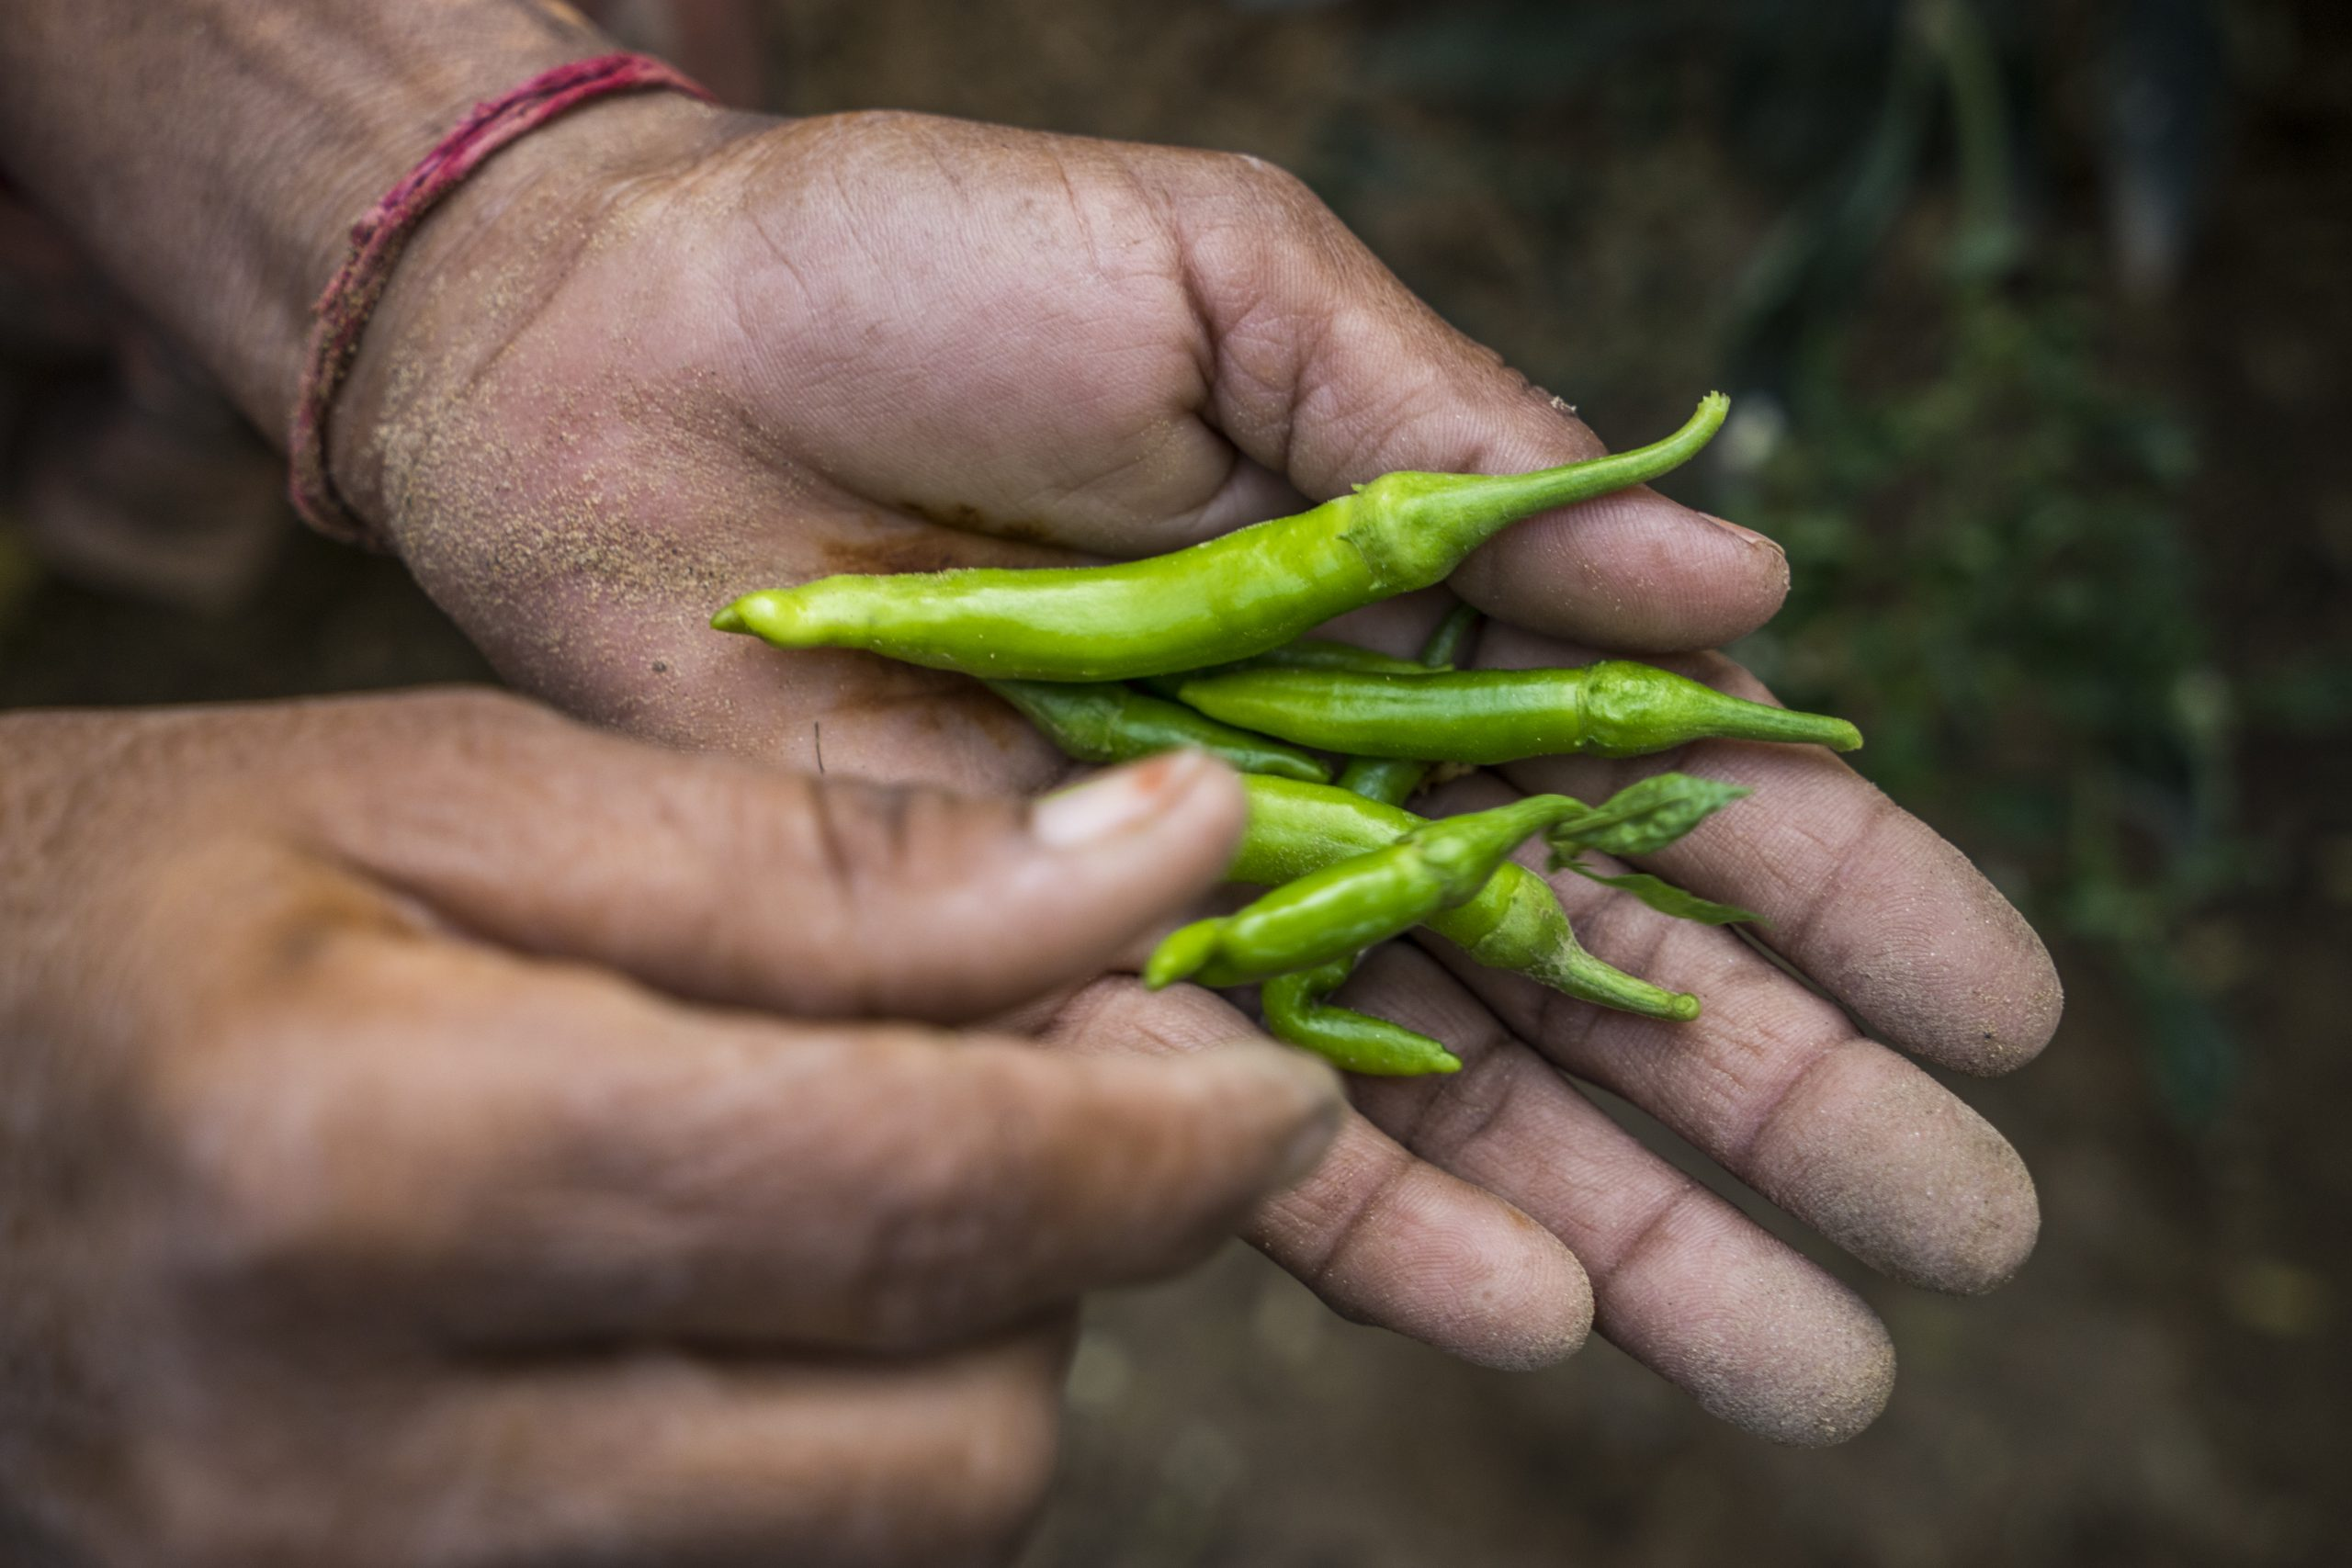 Small-scale farmers in India learn how to grow organic kitchen gardens. Image of a hand outstretched with vegetables.